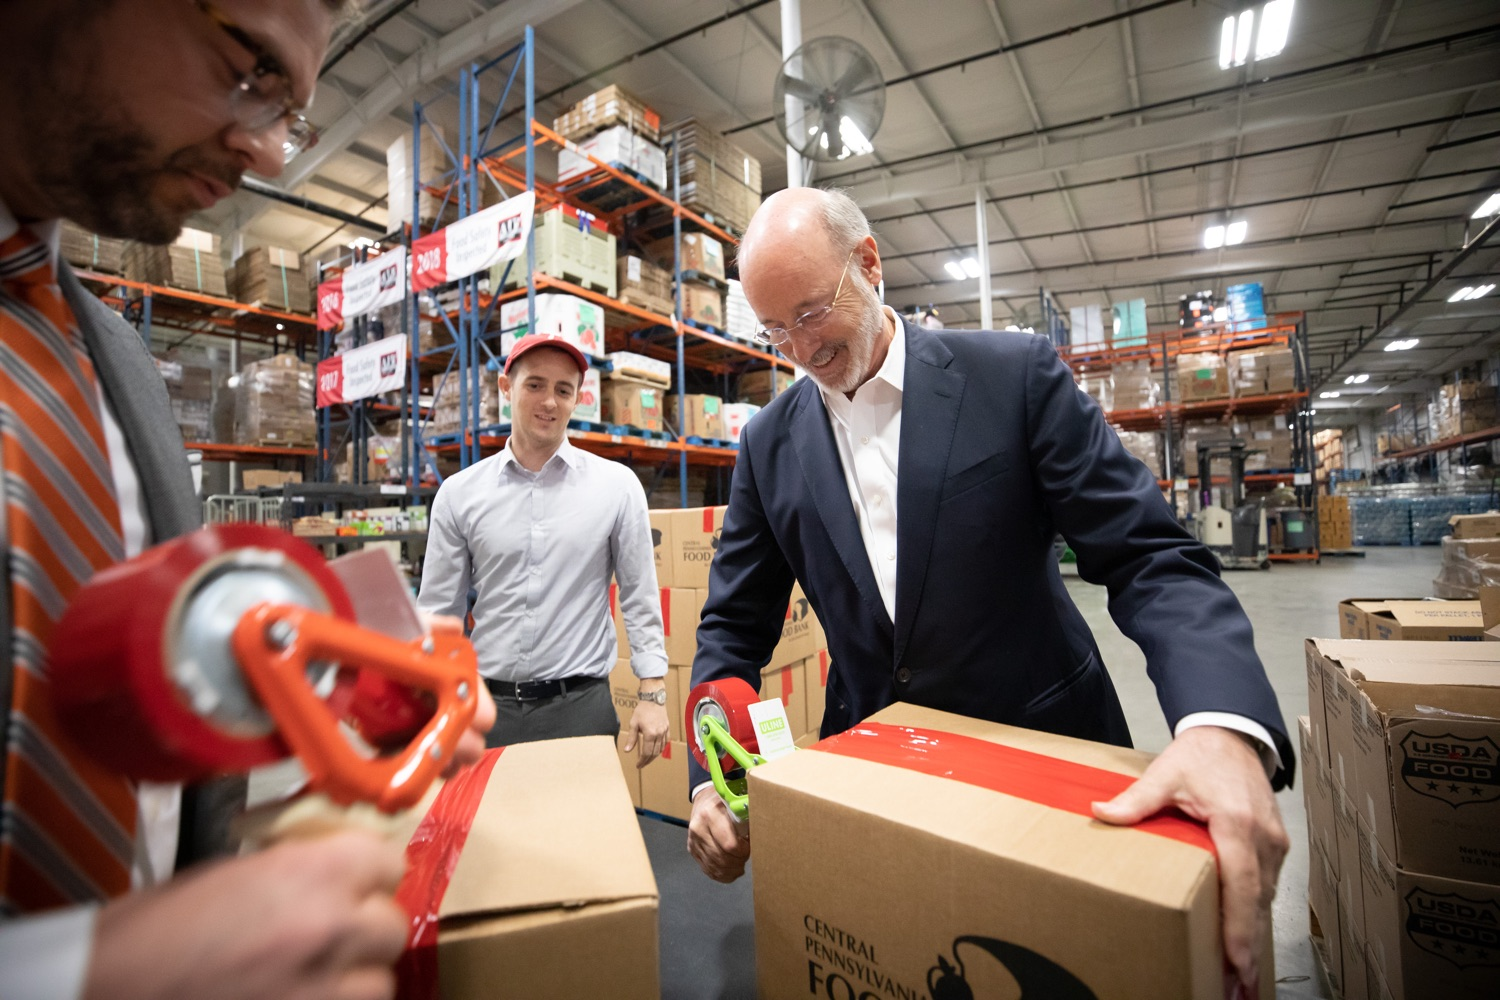 "<a href=""http://filesource.abacast.com/commonwealthofpa/photo/17632_gov_foodbank_volunteering_dz_015.jpg"" target=""_blank"">⇣ Download Photo<br></a>Governor Tom Wolf loading boxes of food at the Central Pennsylvania Food Bank.  The governor and first lady visit the Central Pennsylvania Food Bank in Harrisburg to participate in a volunteer project, packing boxes of food for veterans and their families. Ahead of Thanksgiving and the holiday season, Governor Tom Wolf and First Lady Frances Wolf are reminding Pennsylvanians of the importance of helping each other. Harrisburg, PA  Tuesday November 26, 2019"